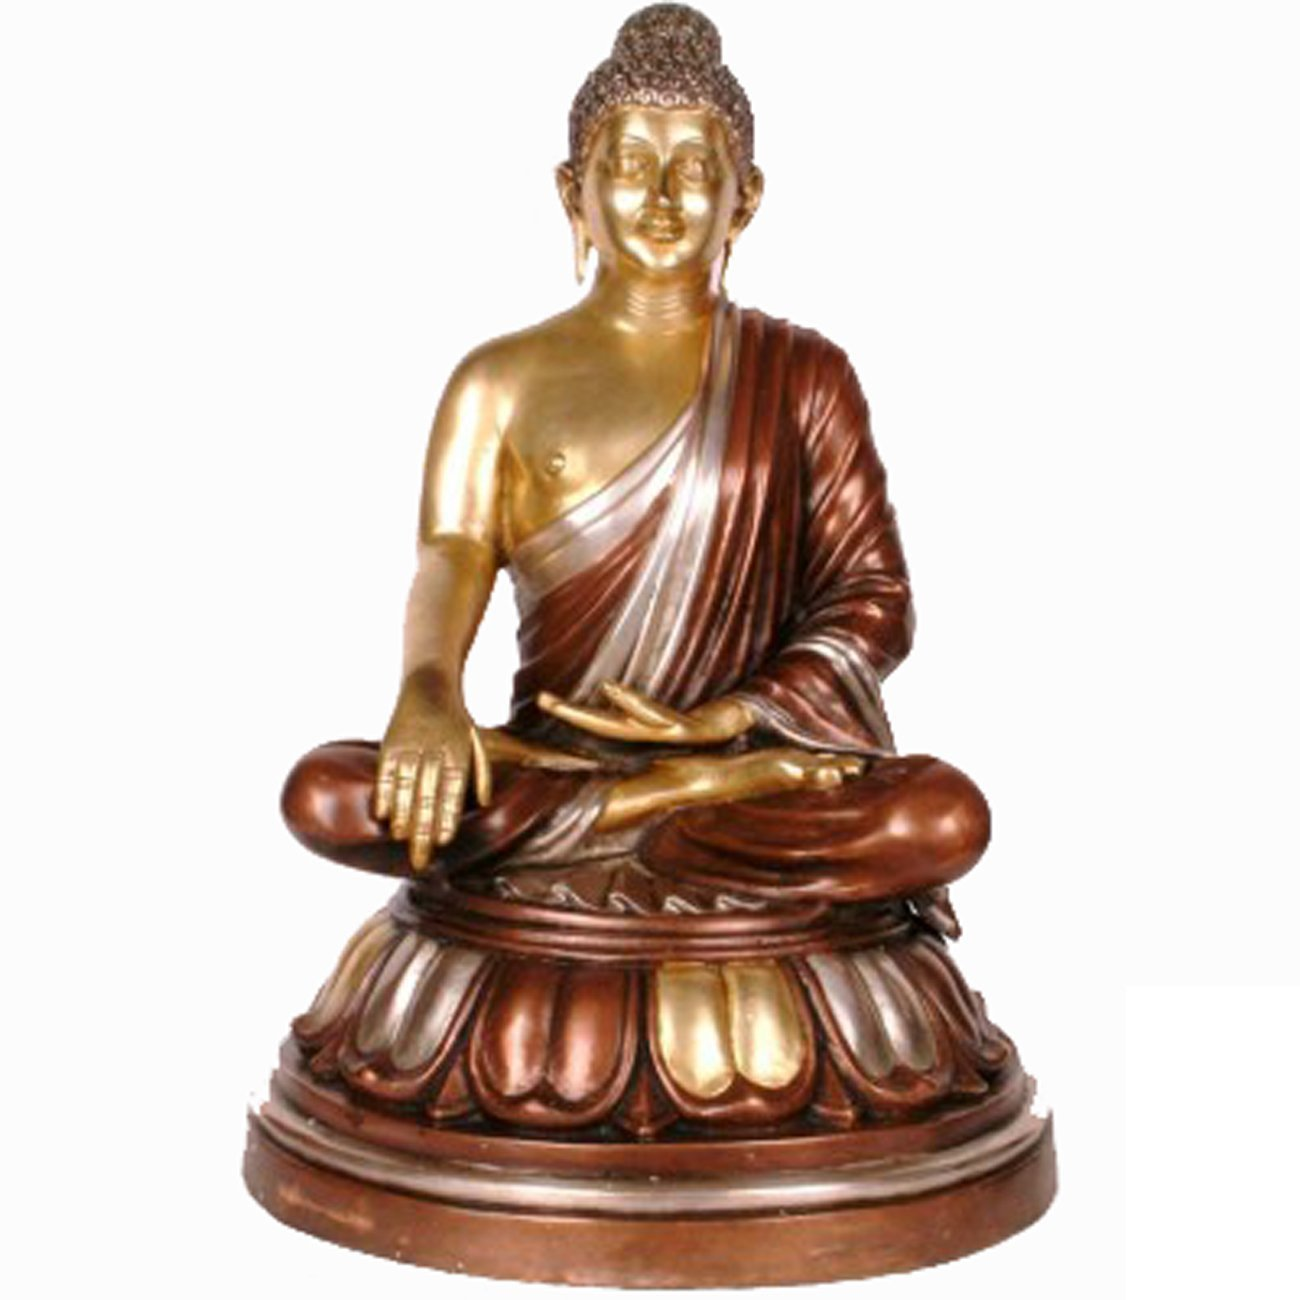 Idol Collections Thai Sitting Buddha on Base Brass Statue, Golden/Brown by Idol Collections